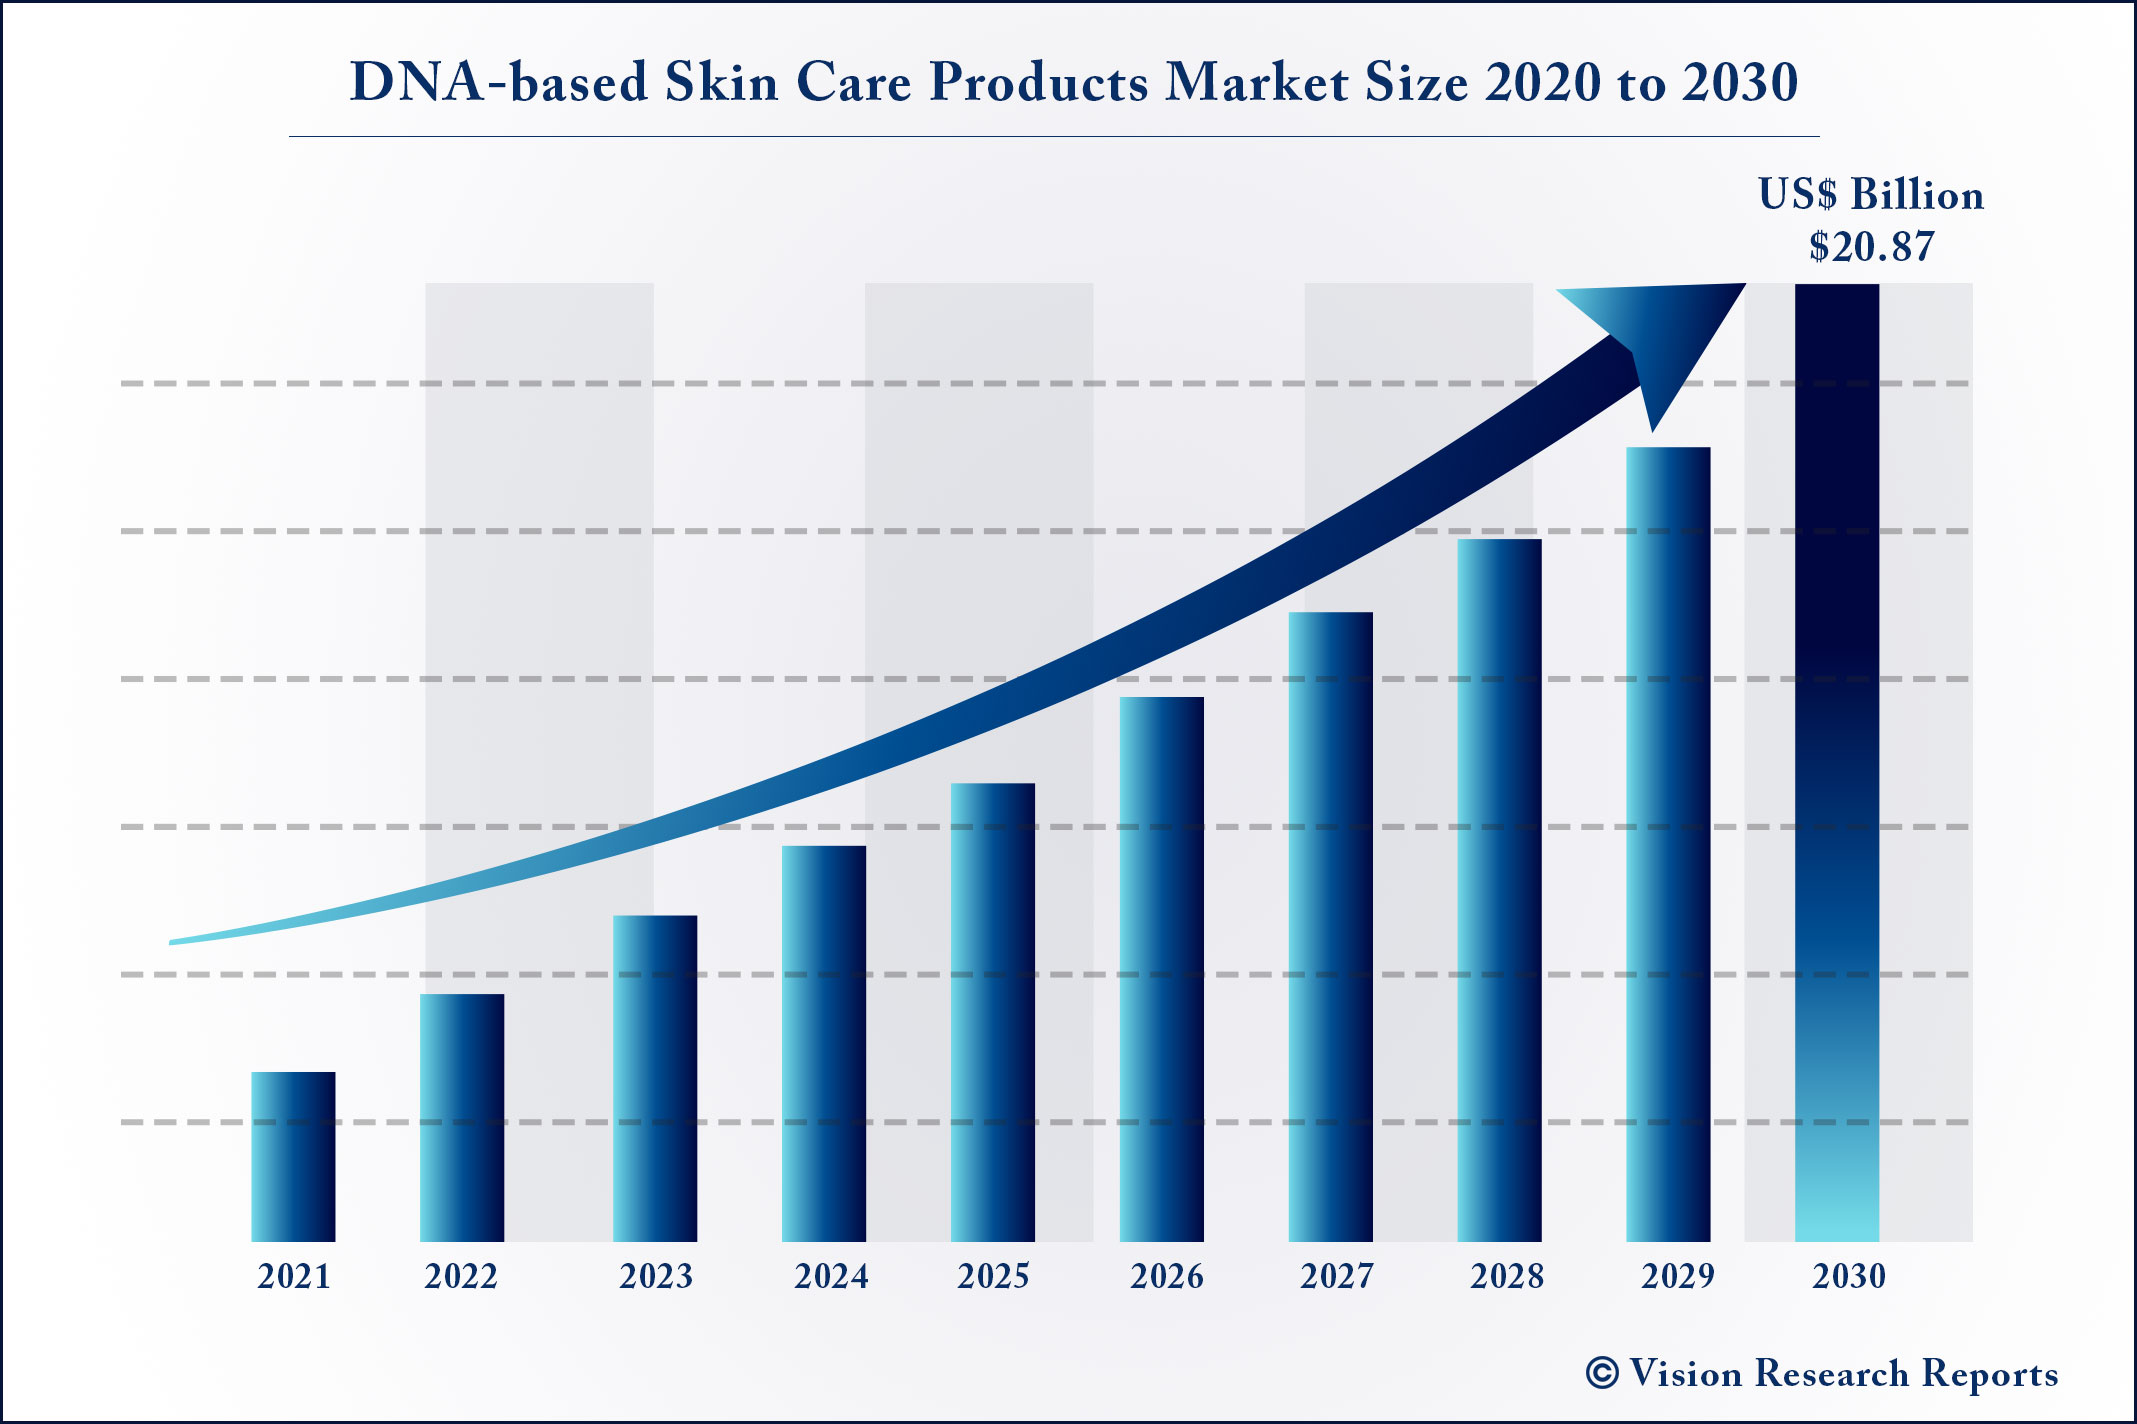 DNA-based Skin Care Products Market Size 2020 to 2030